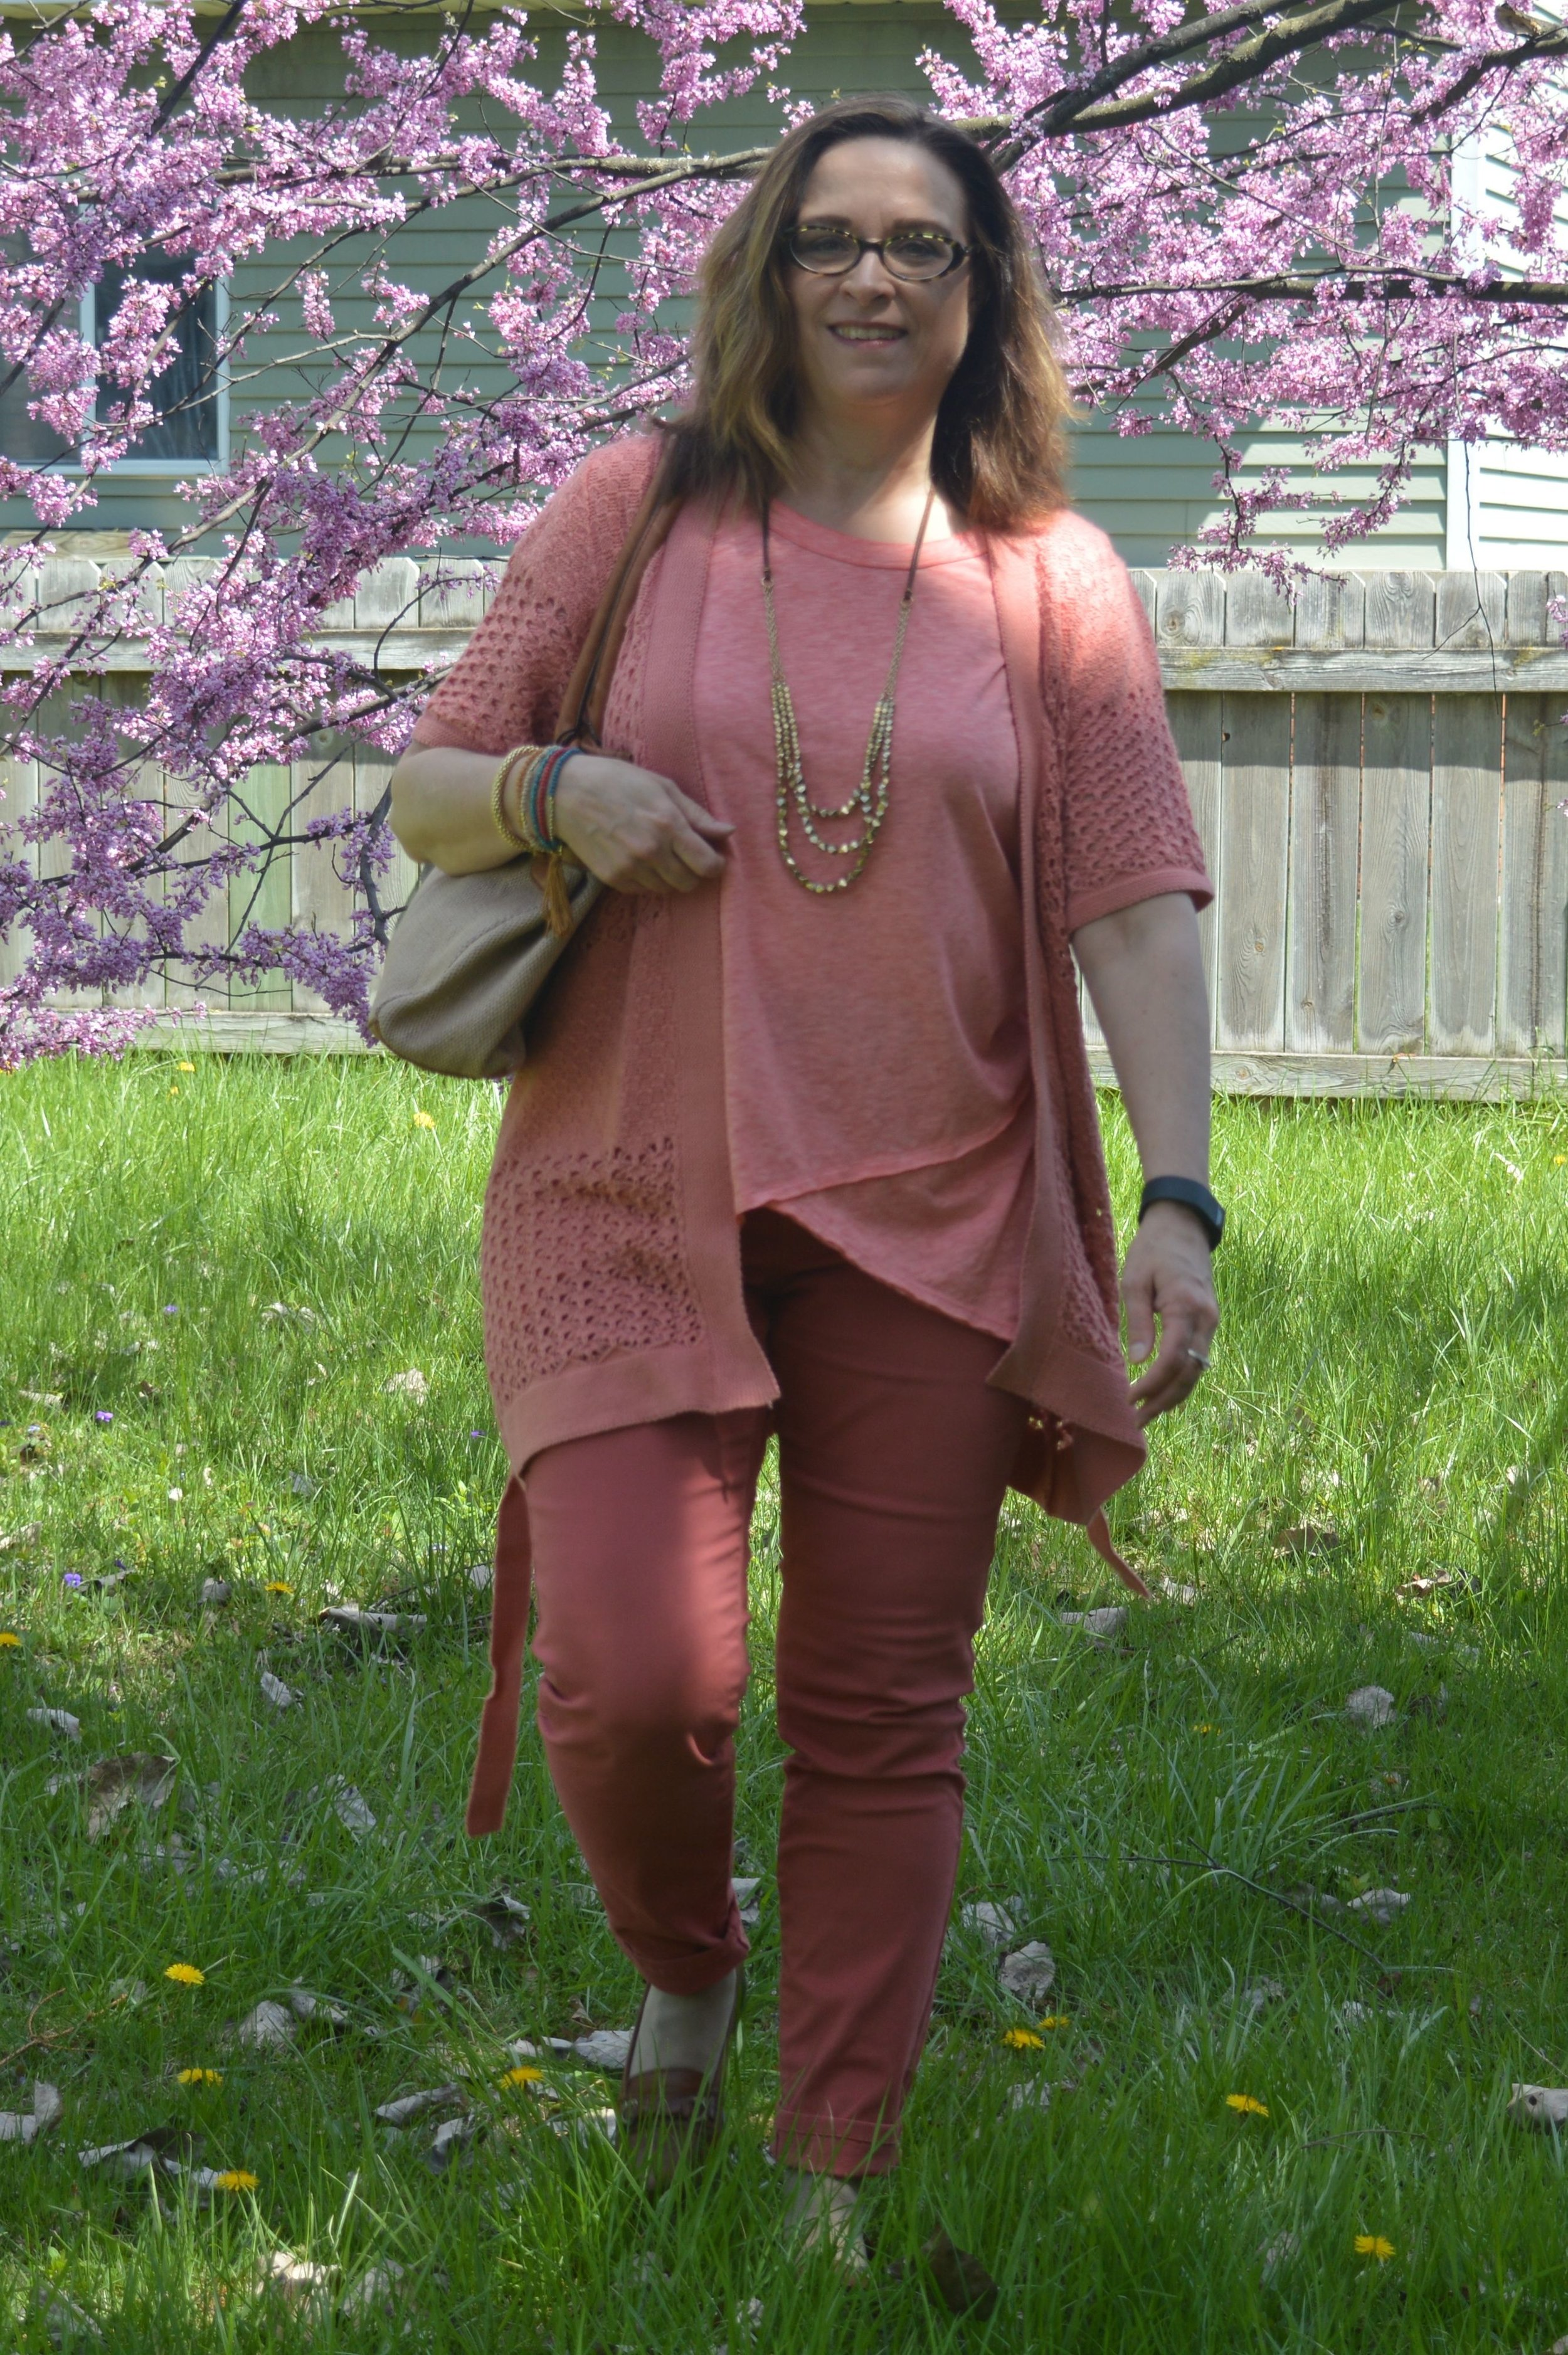 monochromatic outfit - coral